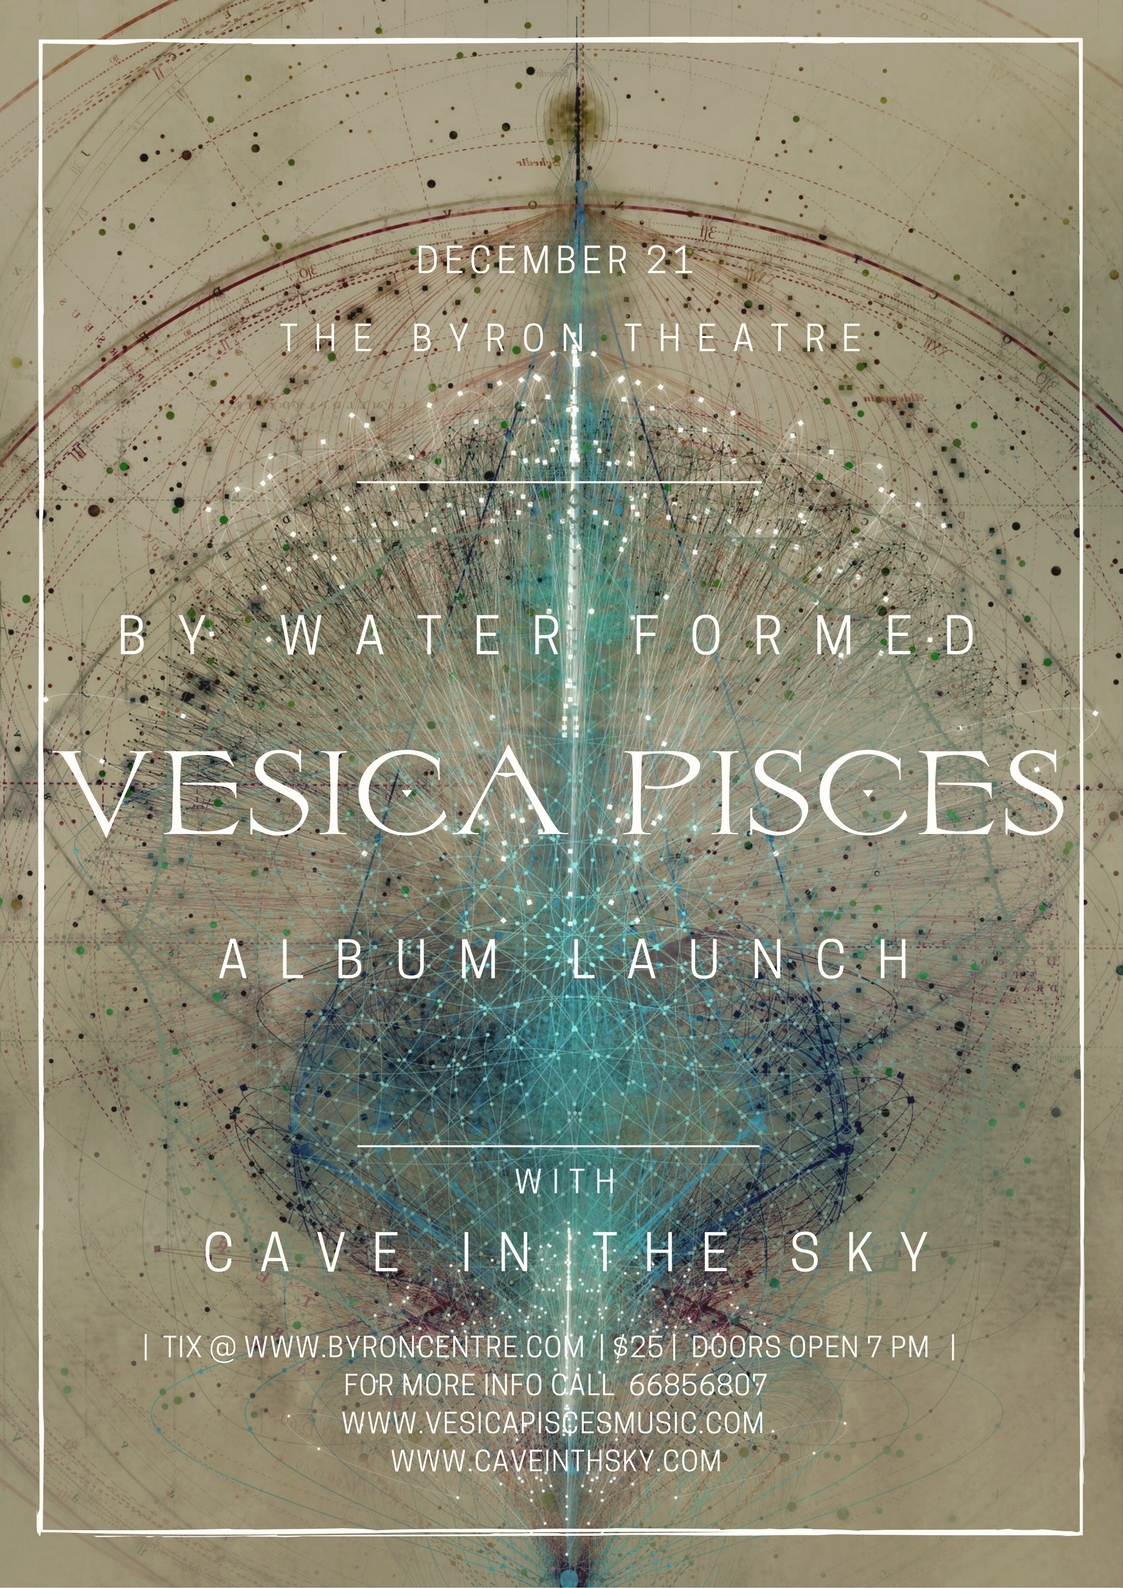 2. vesica pisces album launch A3.jpg